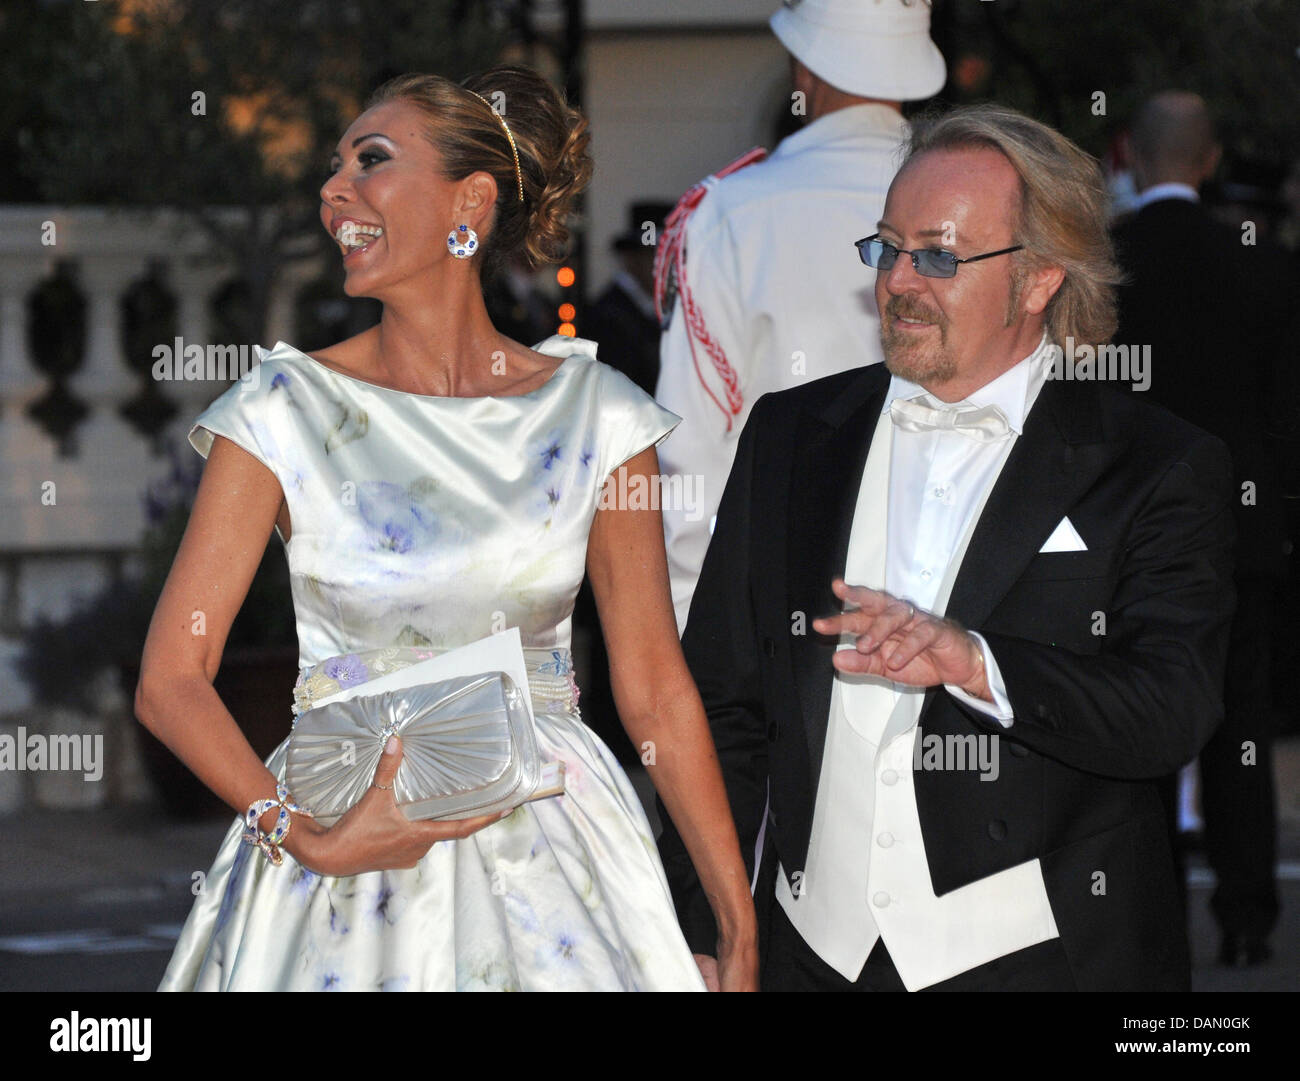 Italian singer Umberto Tozzi and his wife attend the official dinner on the Opera terraces after the religious wedding Stock Photo